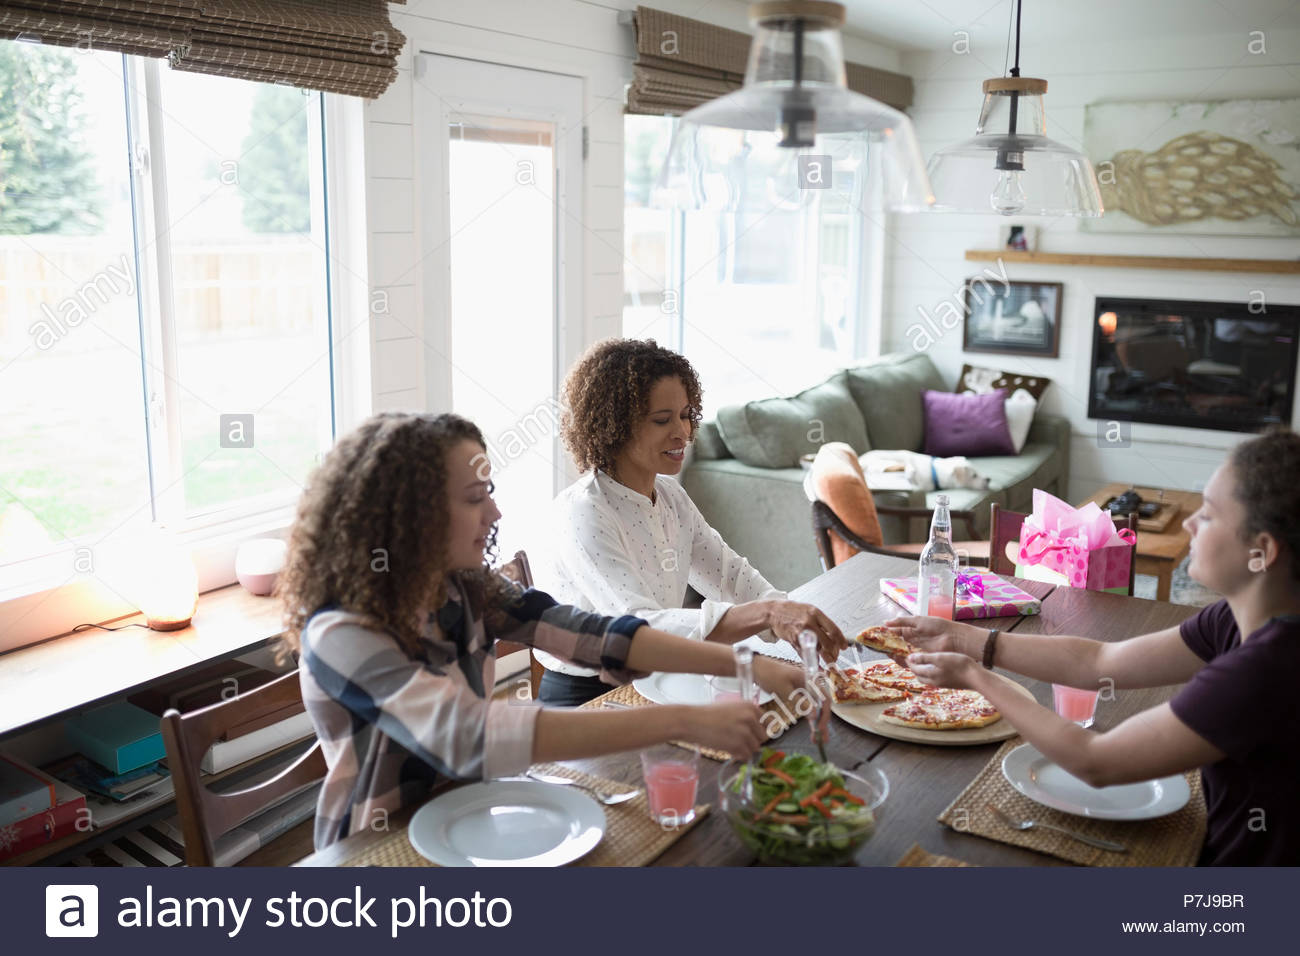 Mother and daughters enjoying Mothers Day pizza lunch - Stock Image